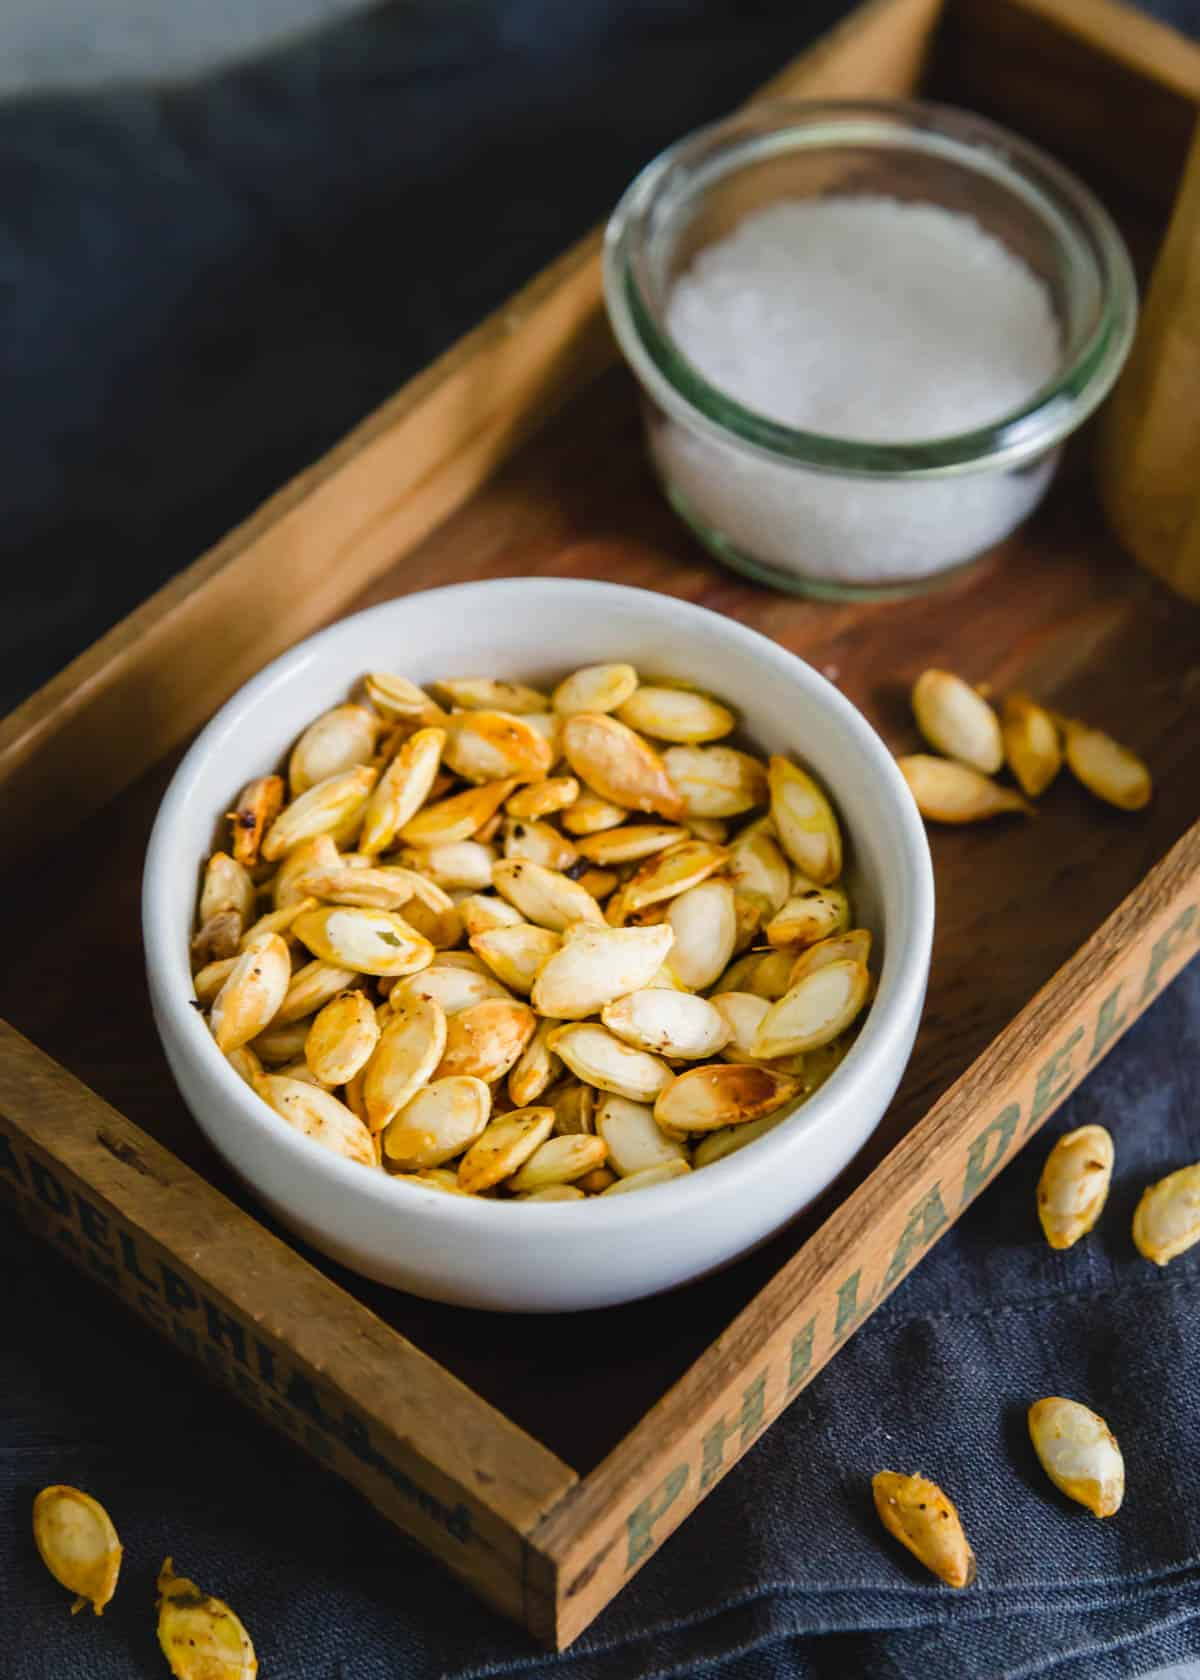 Learn how to make crispy, delicious roasted winter squash seeds with this easy method and simple seasoning.